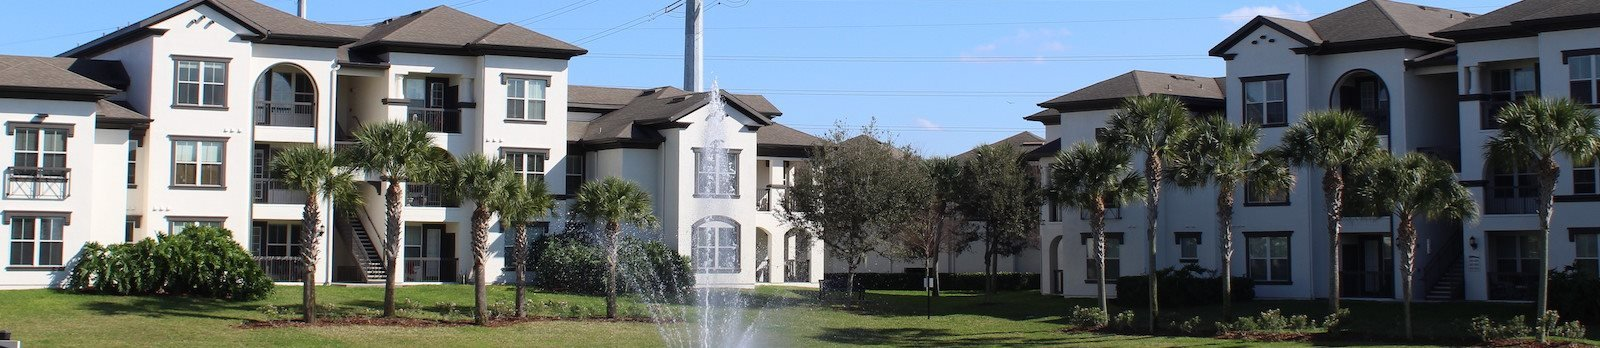 fountain in front of palm trees and apartment buildings